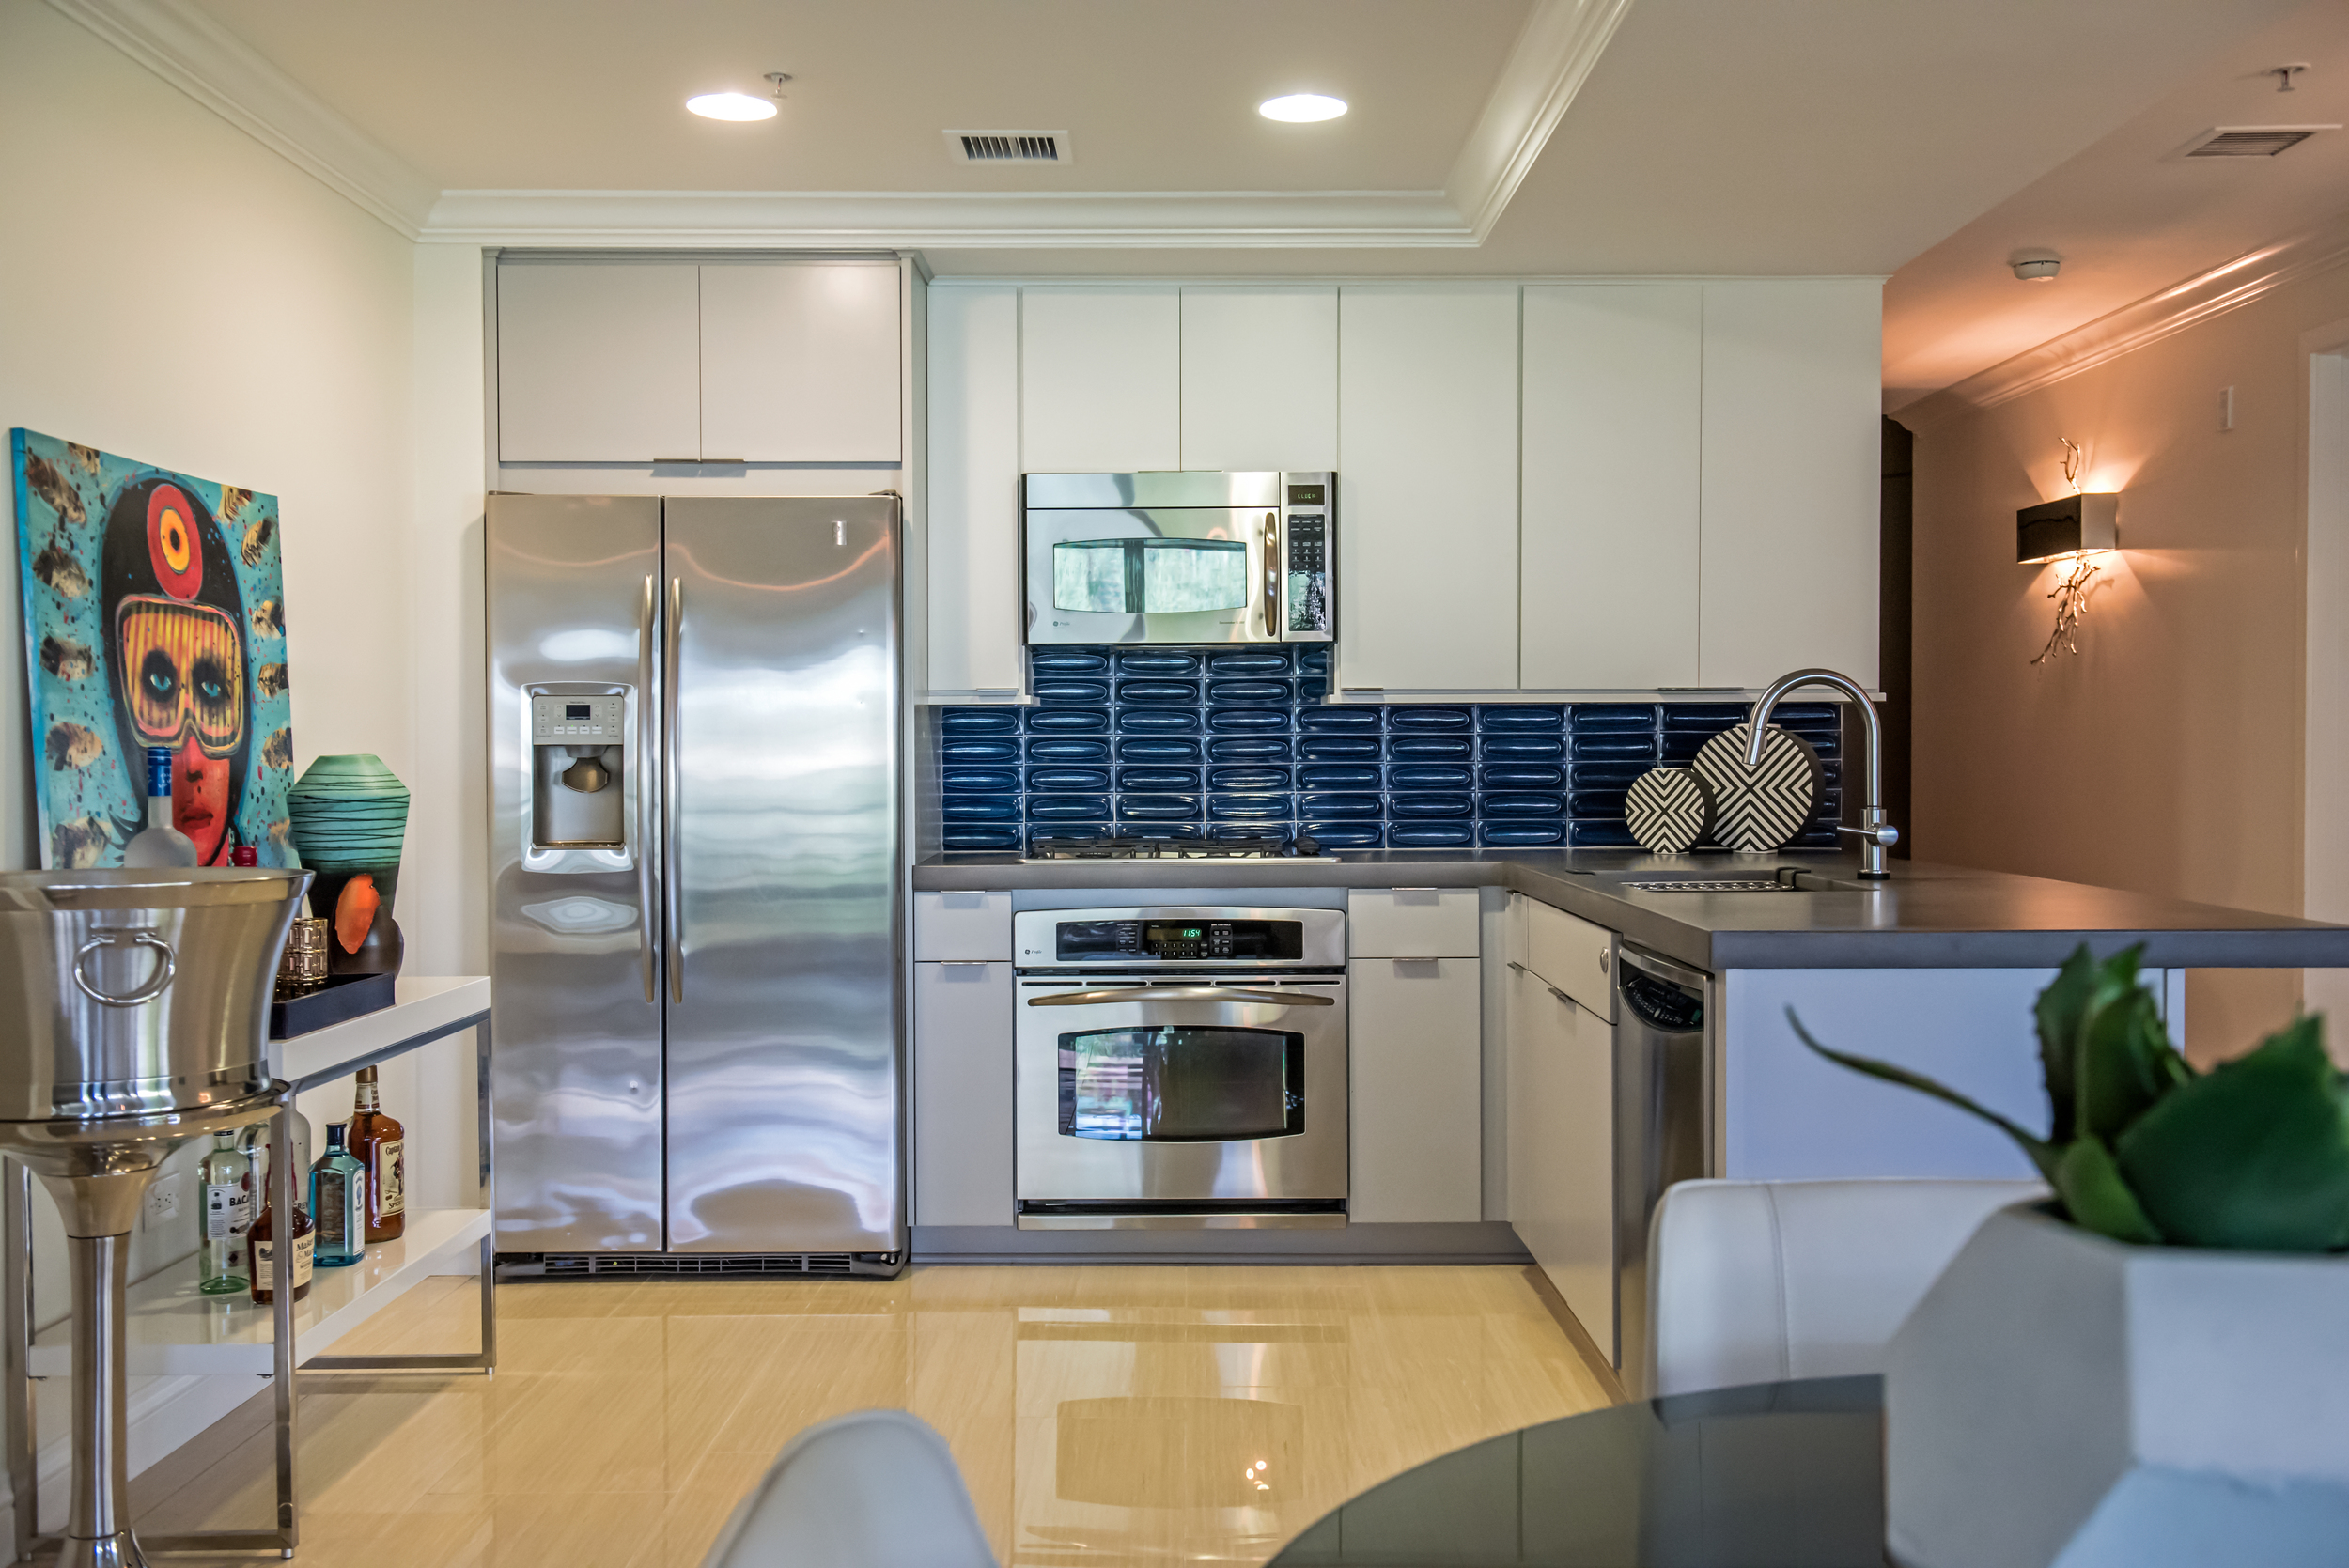 8-Kitchen+Condo+Remodel+Scottsdale+Camelview+Optima.jpg